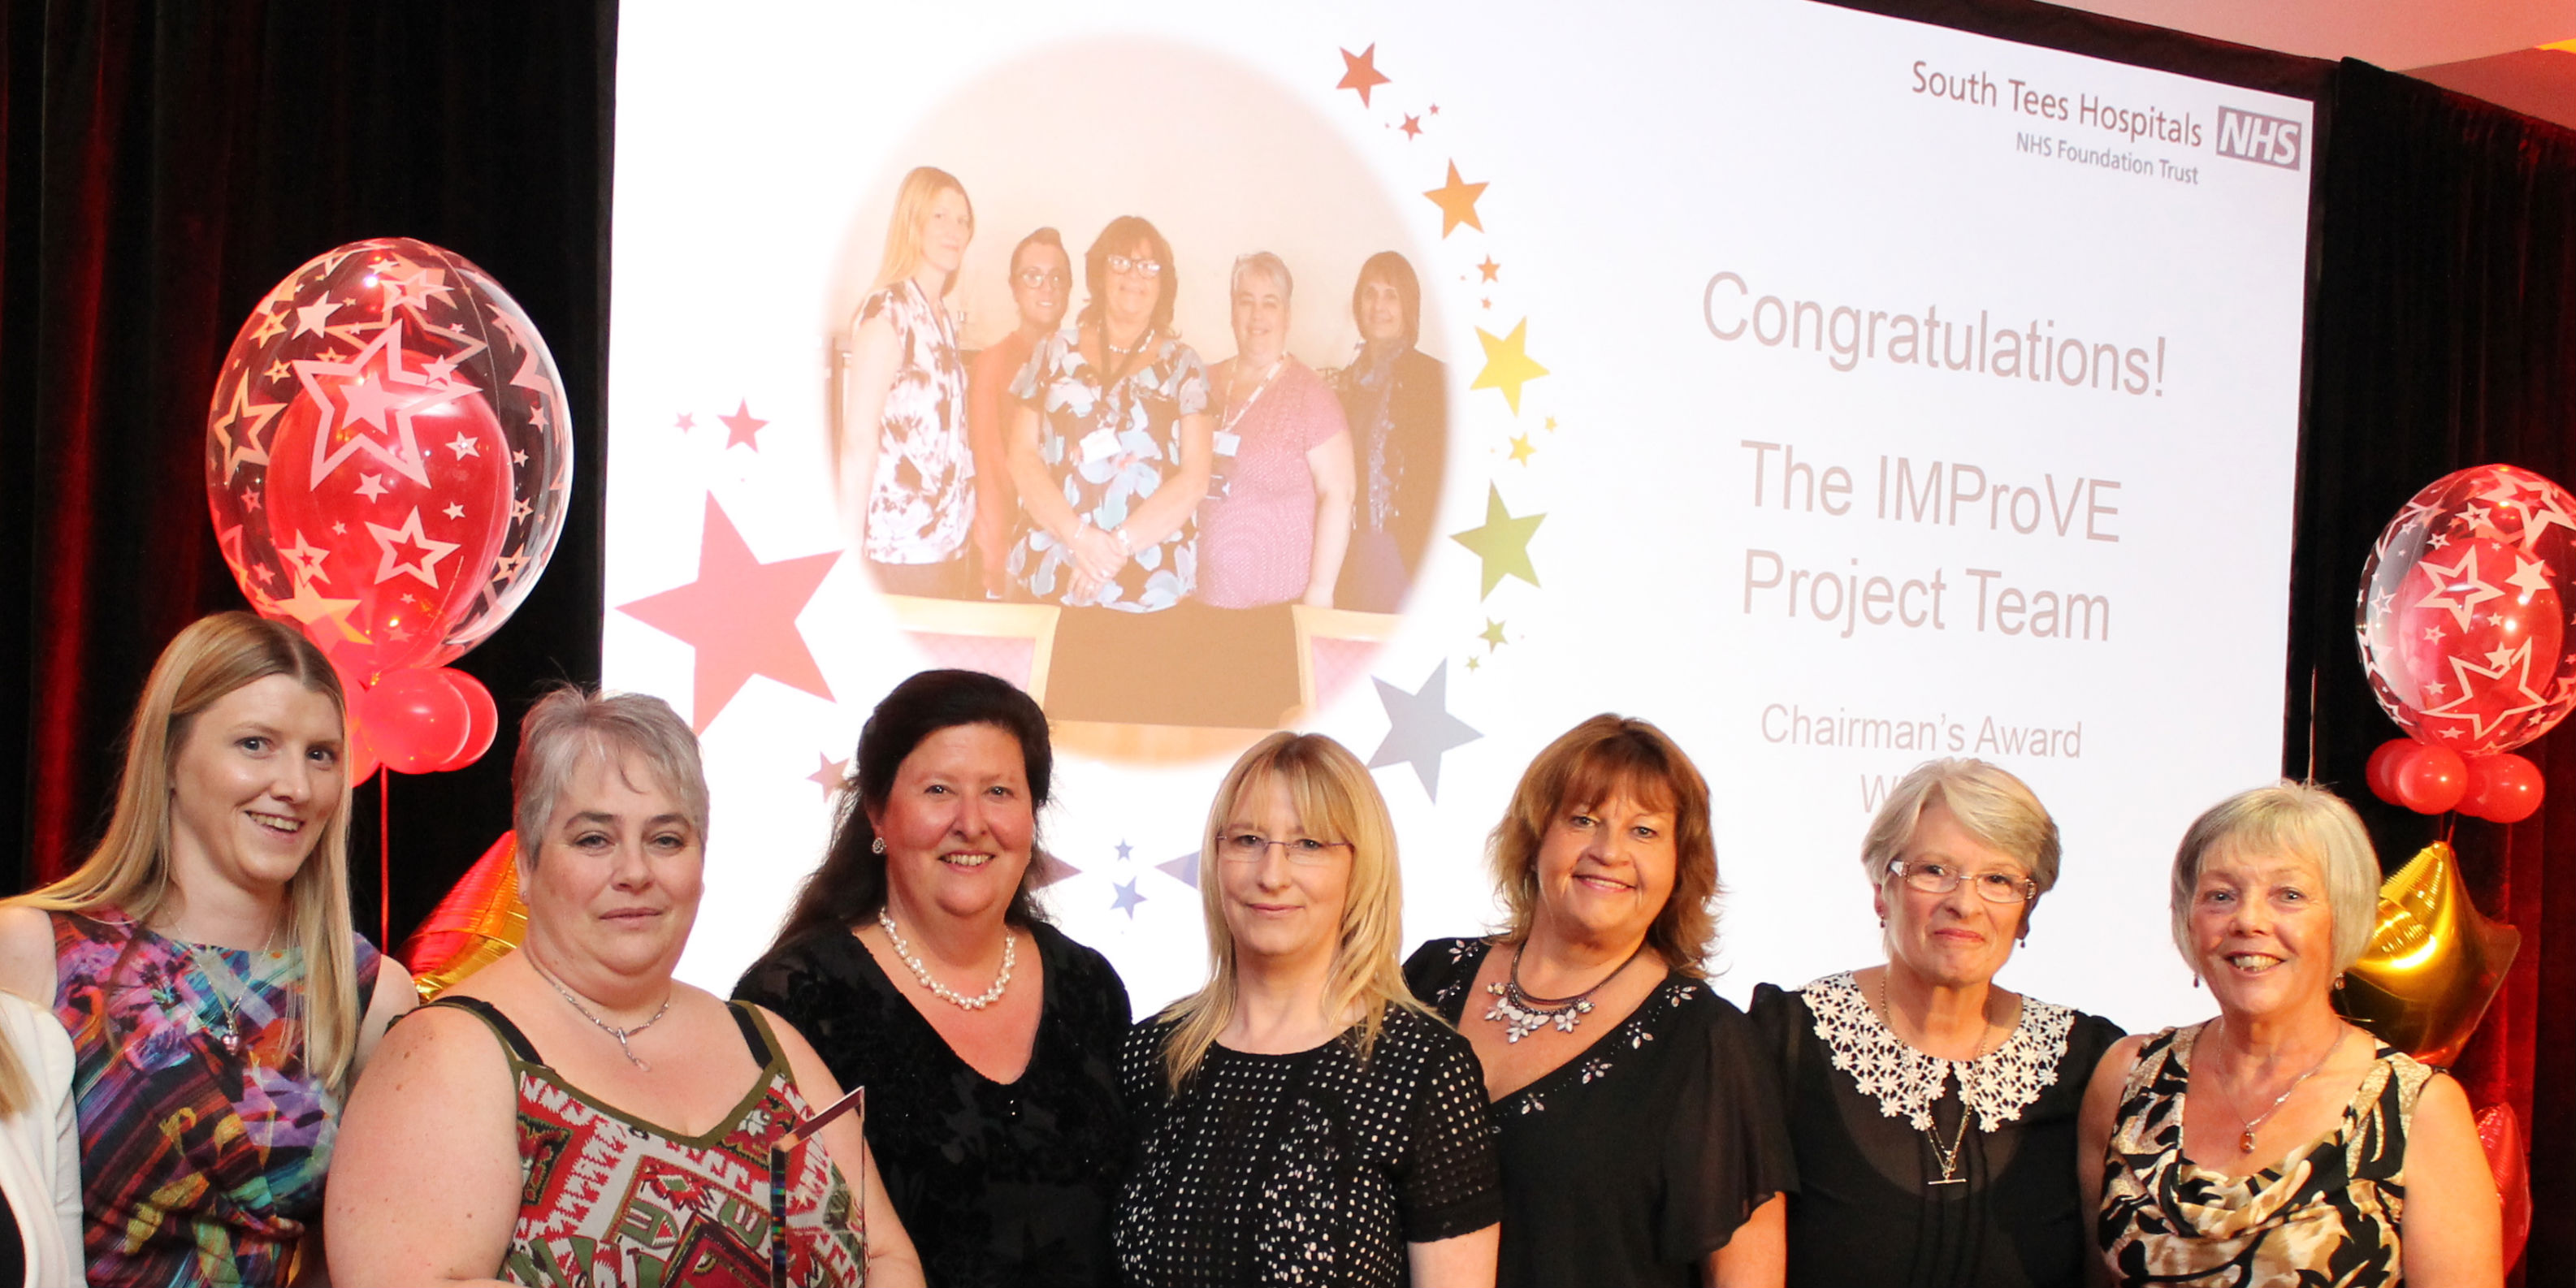 Senior RCN officer Sandra Bullock (far right) was part of the IMproVE team at South Tyneside which won an award for excellent partnership working